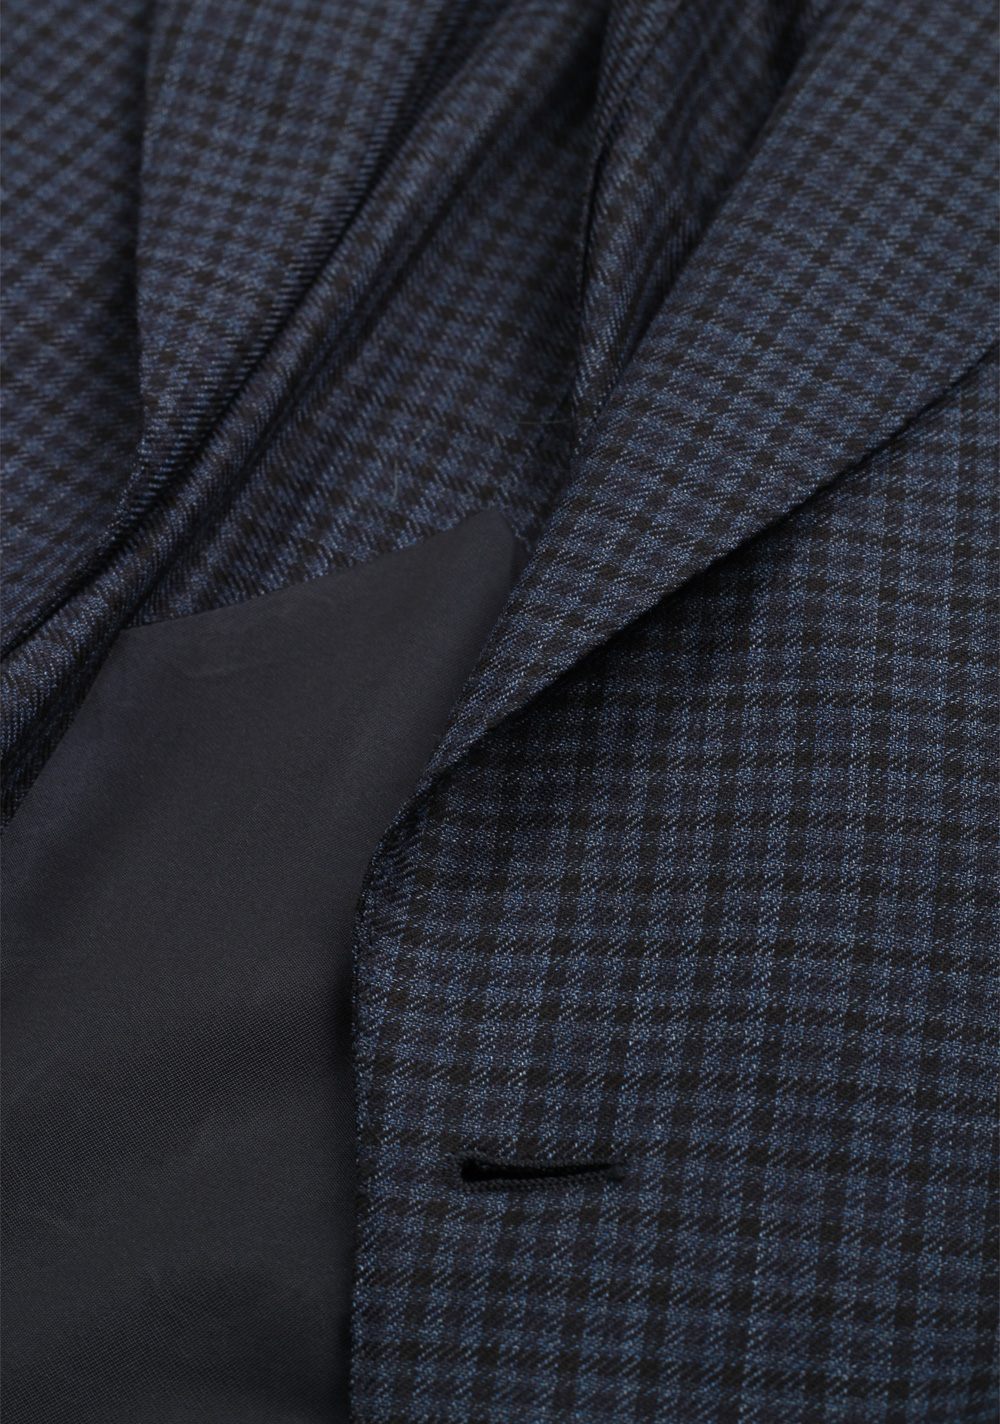 TOM FORD Atticus Blue Checked Suit Size 46 / 36R U.S. | Costume Limité